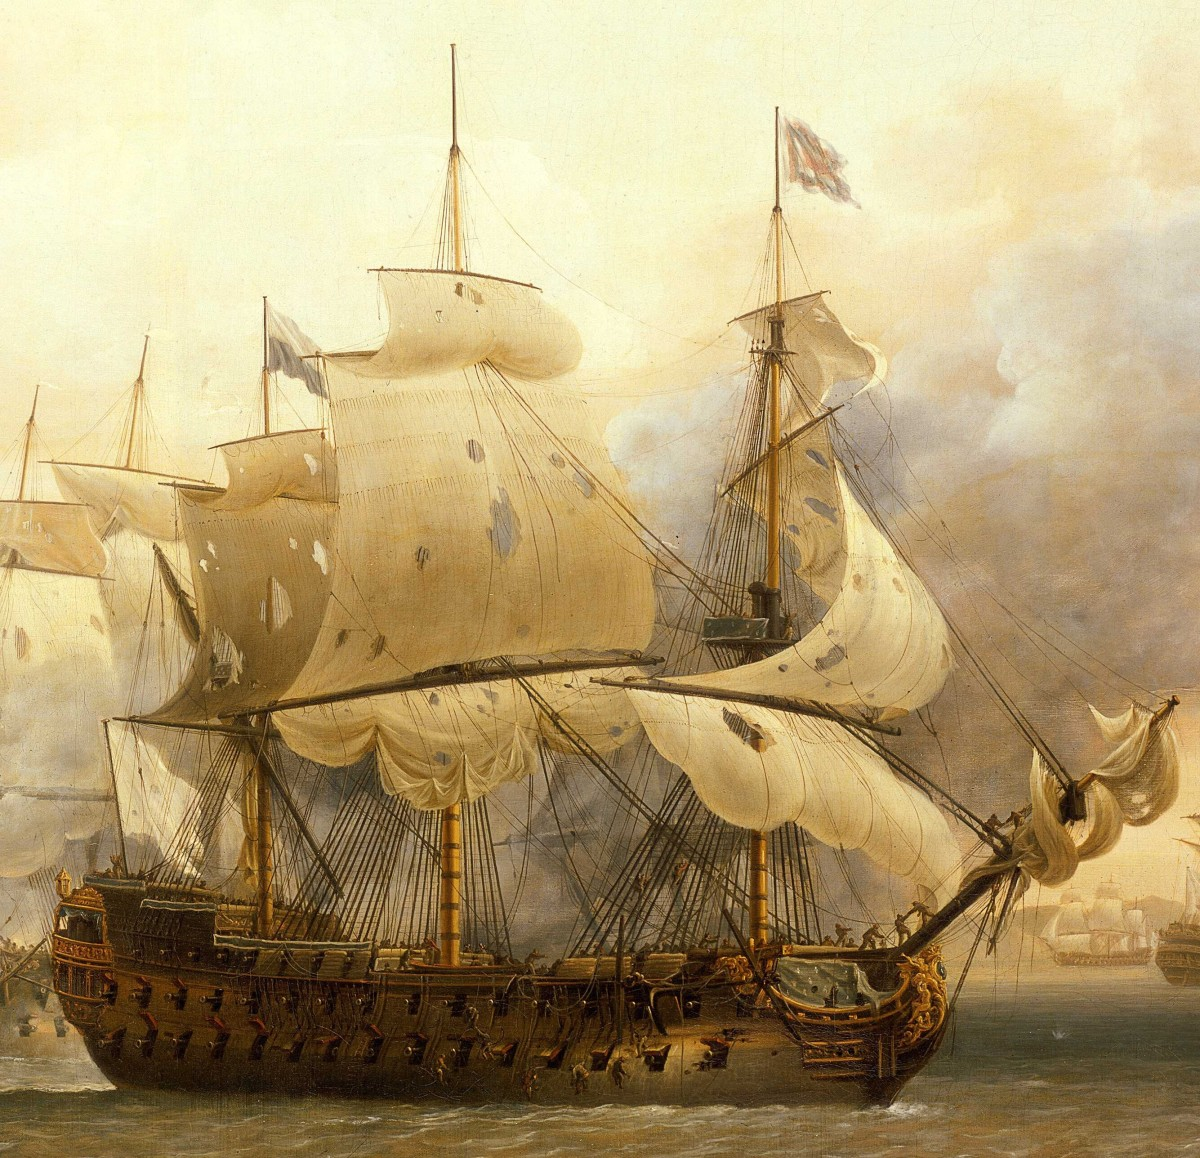 The French 80 gun ship of the line Saint-Esprit - First rate warships would have been even larger